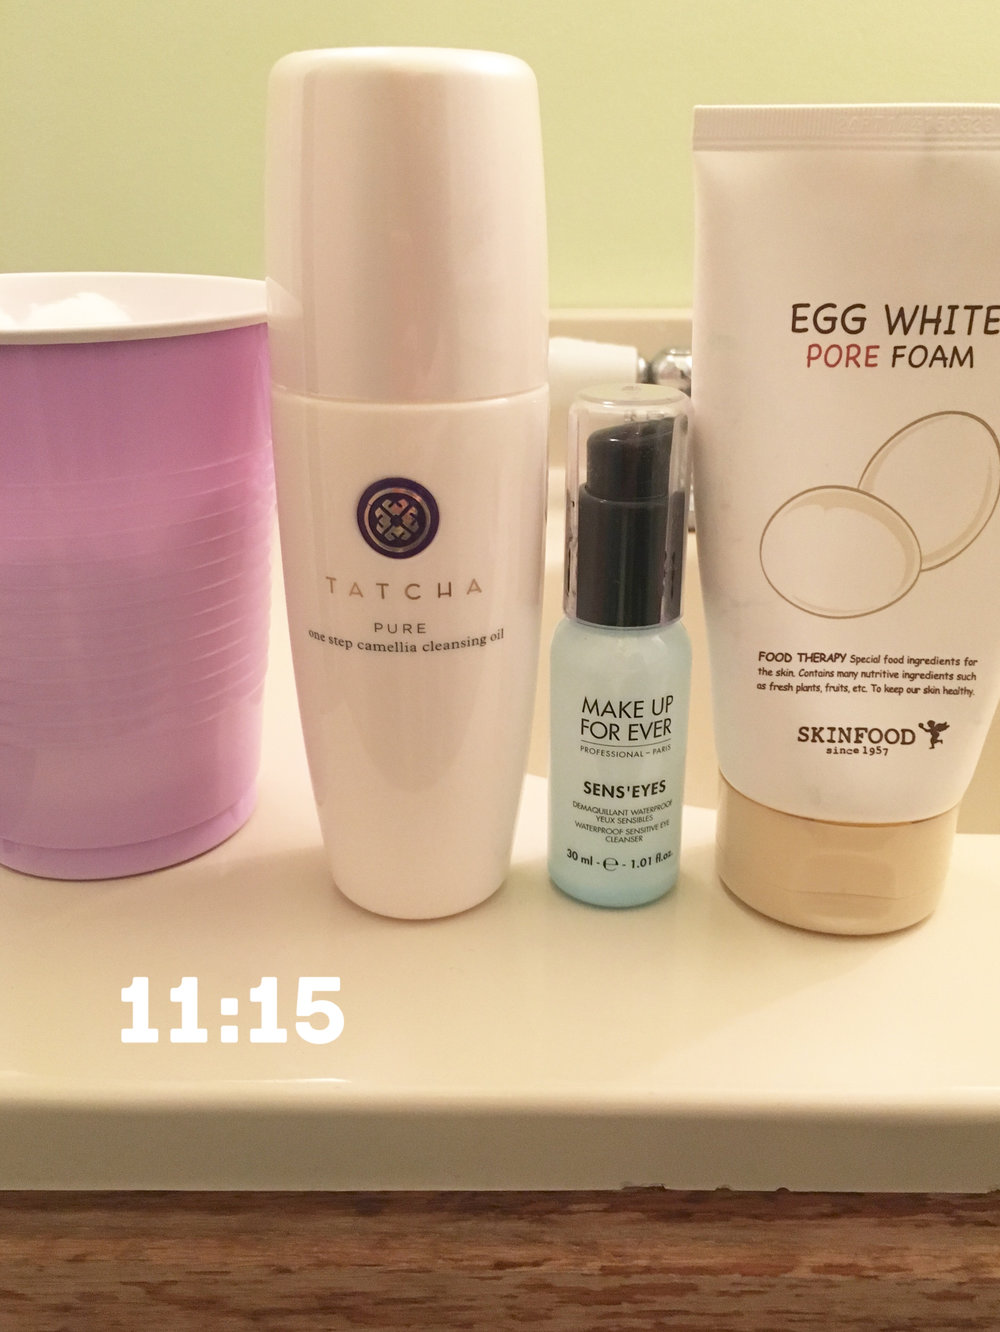 Cup o' cotton balls |  Tatcha Pure Camellia Cleansing Oil  |  Make-Up Forever Sens'Eyes  |  Skinfood Egg White Pore Foam